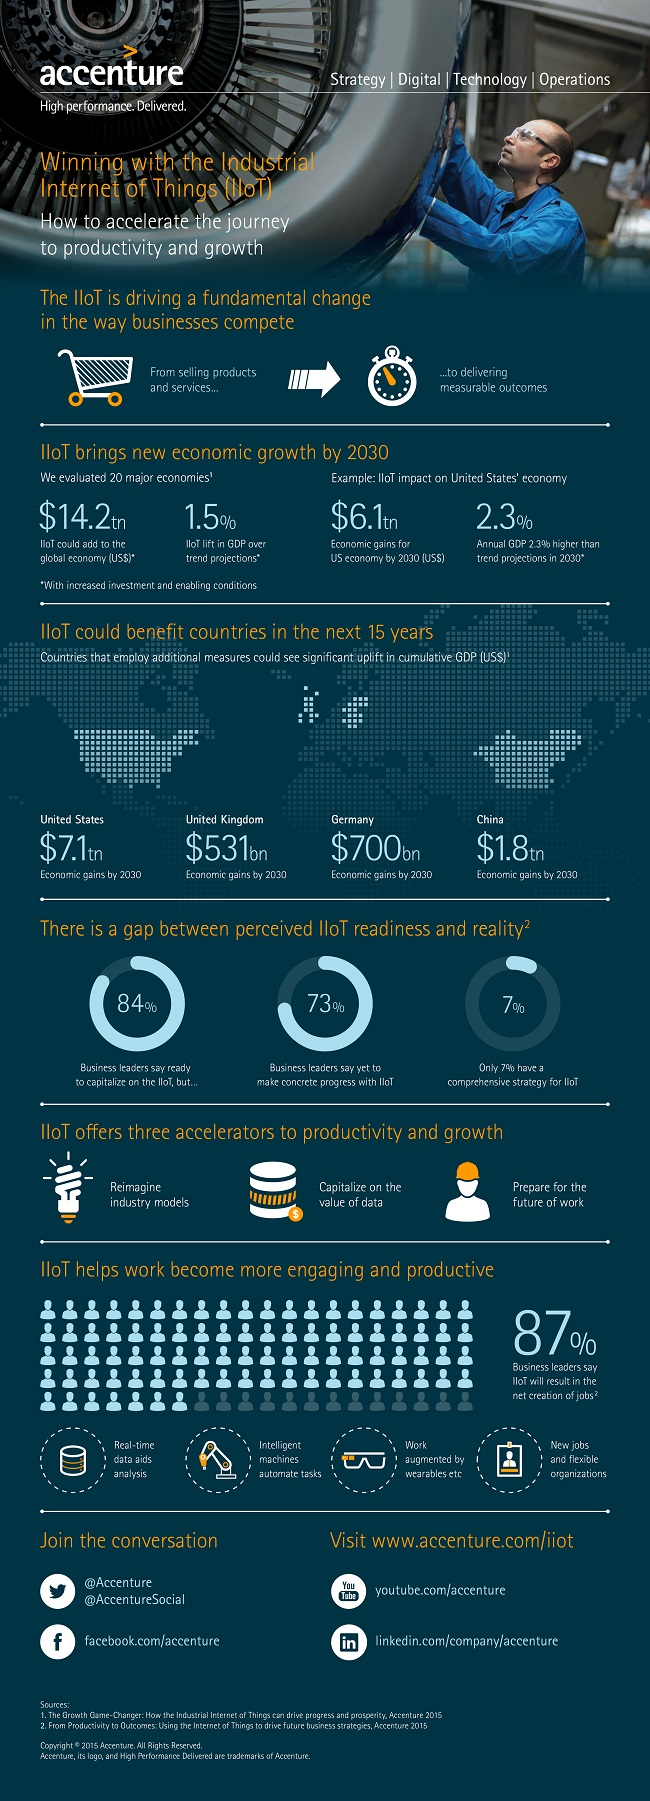 Accenture-Industrial-Internet-of-Things-Infographic-2015 ...